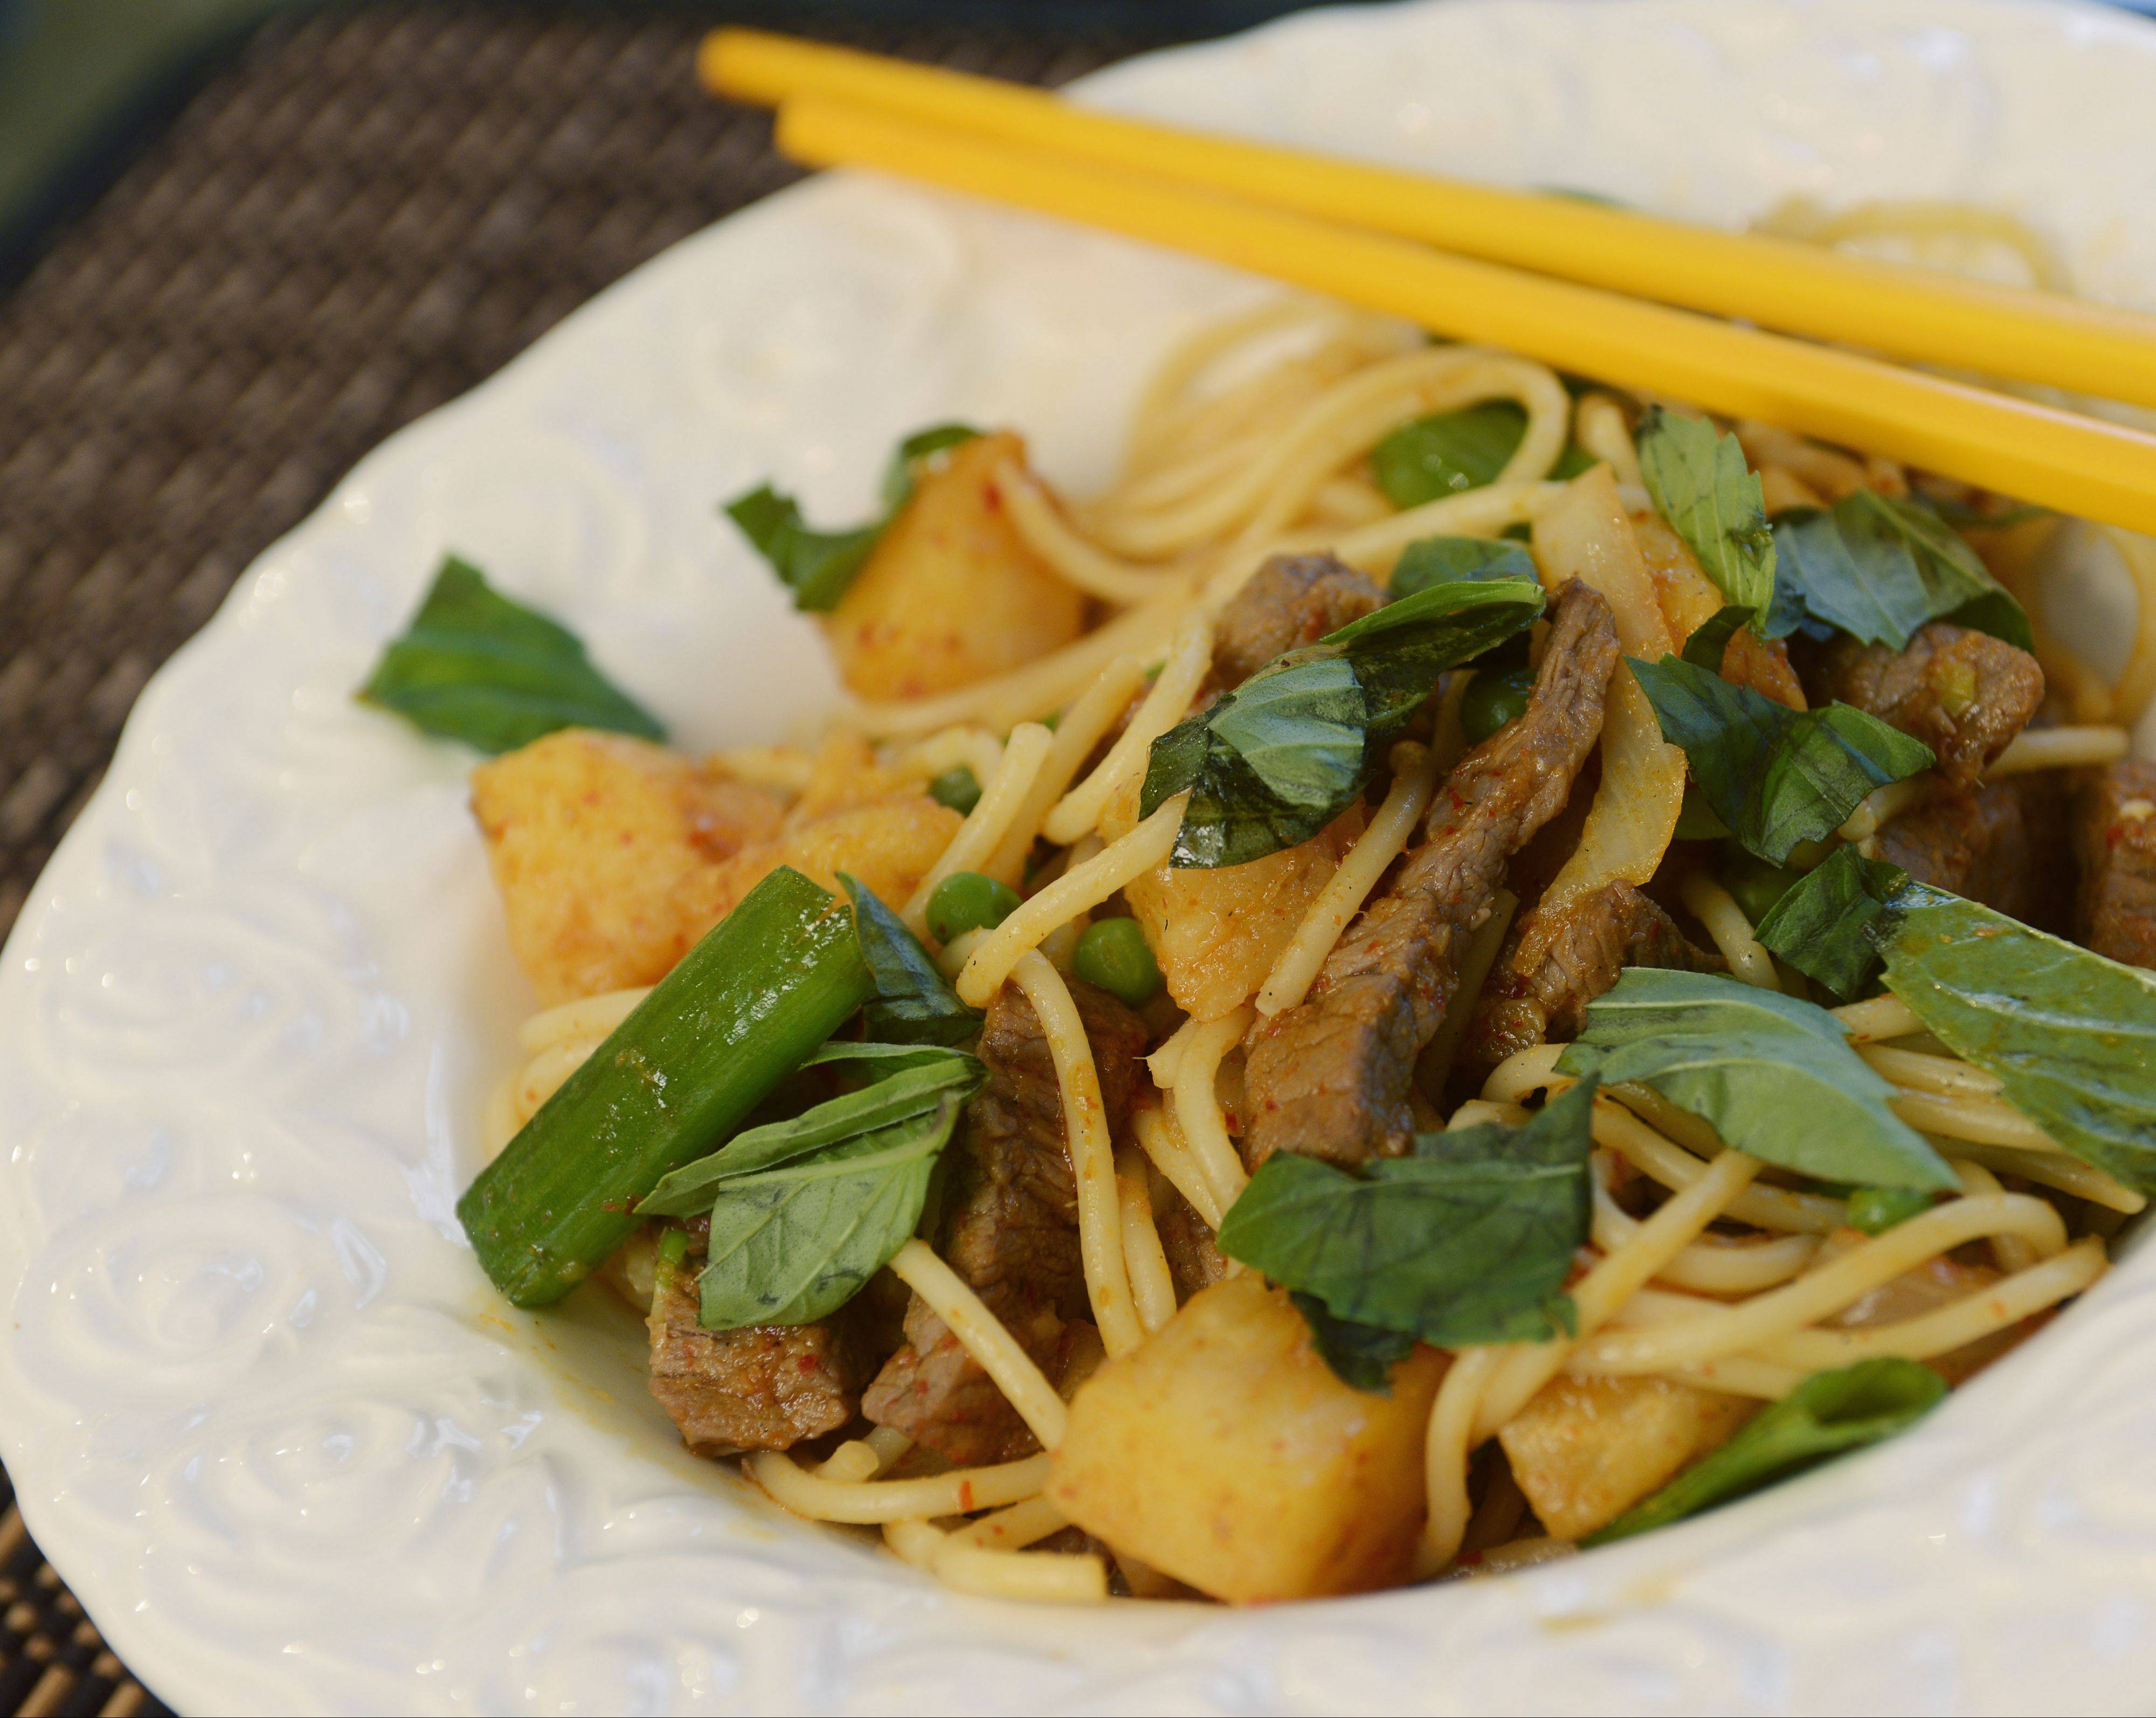 JOE LEWNARD/jlewnard@dailyherald.com �Beef on Fire� is a Thai-inspired stir-fry dish Dan and Ed Kurnick make in their Hoffman Estates kitchen.